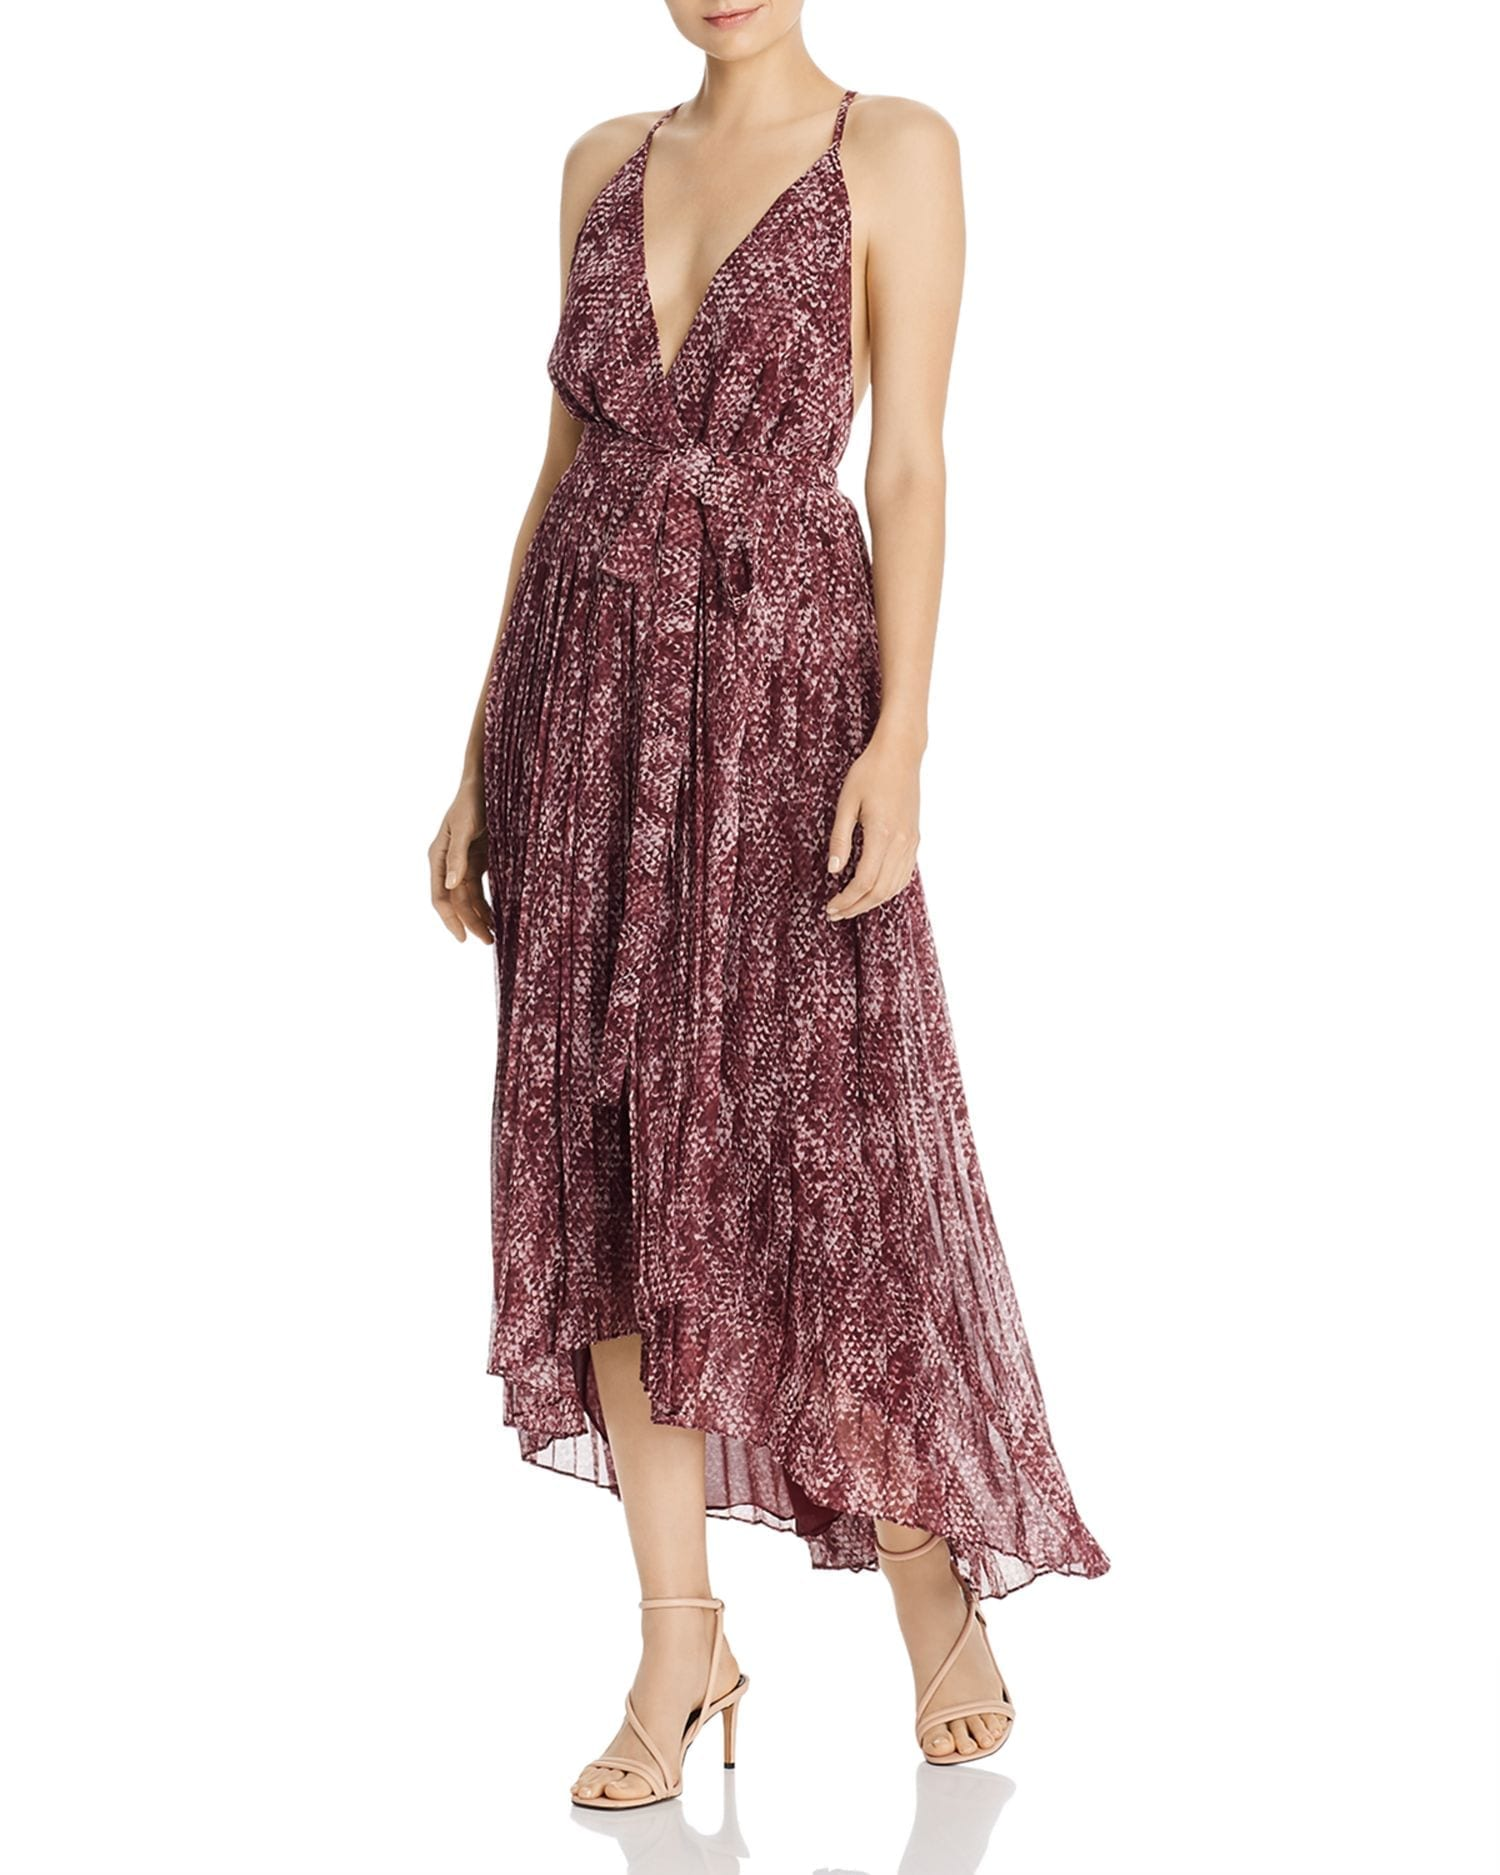 FAME AND PARTNERS Snakeskin-Print High Low Wrap Dress